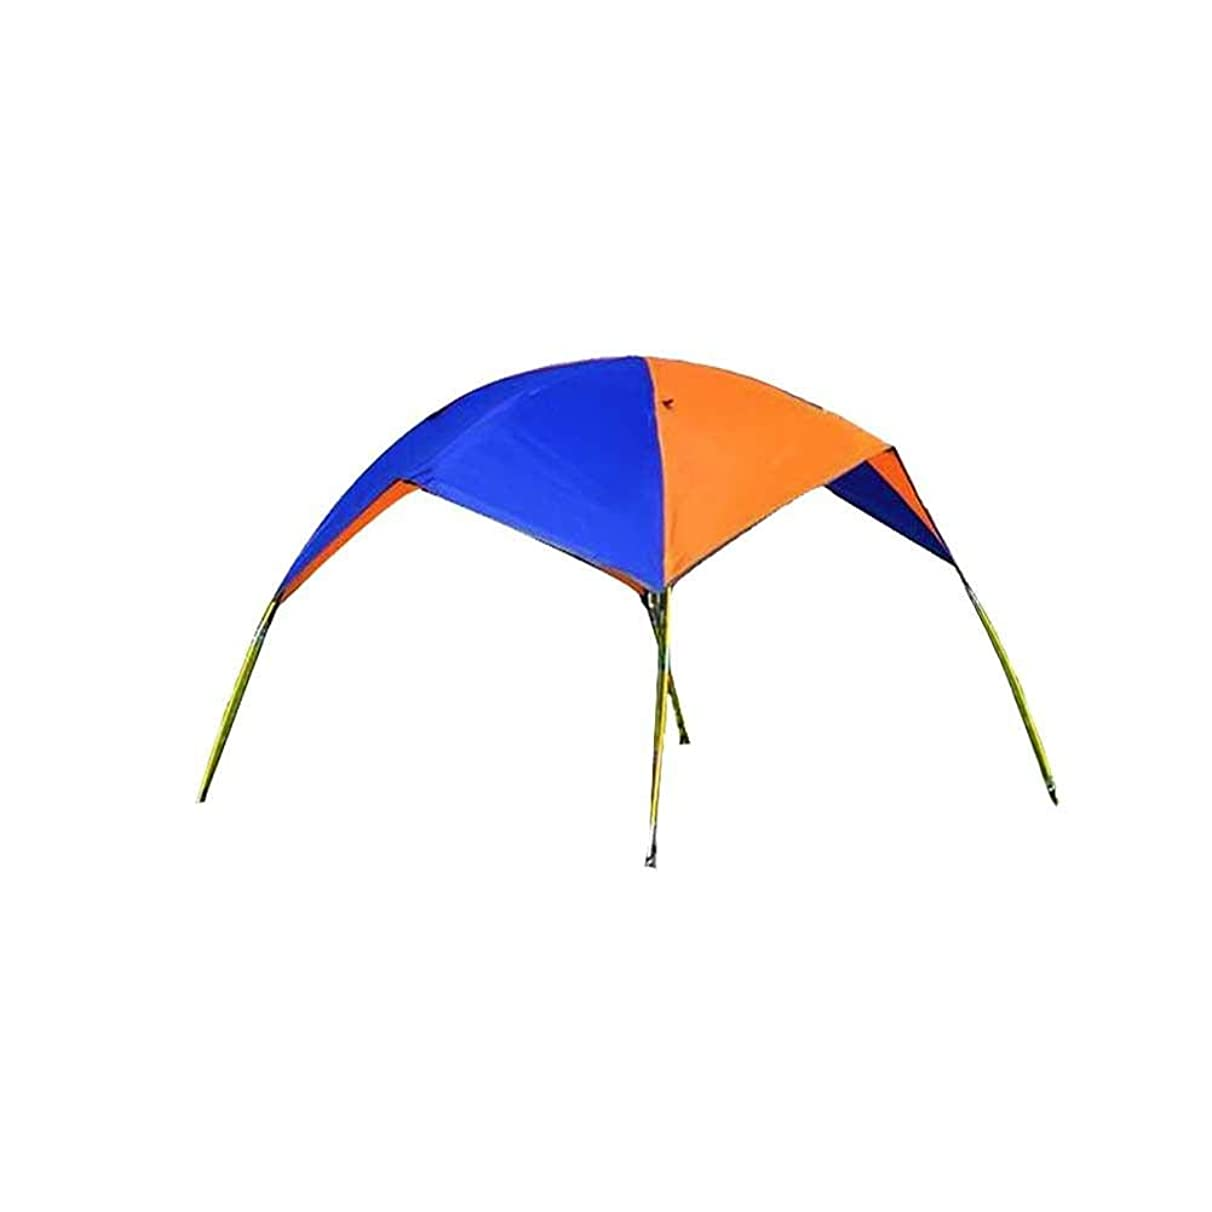 Purefire Inflatable Kayak Awning Canopy, Person Foldable Boat Tent Sailboat Awning Top Cover Fishing Tent Camping Sun Shade Shelter Rain Cover Kit